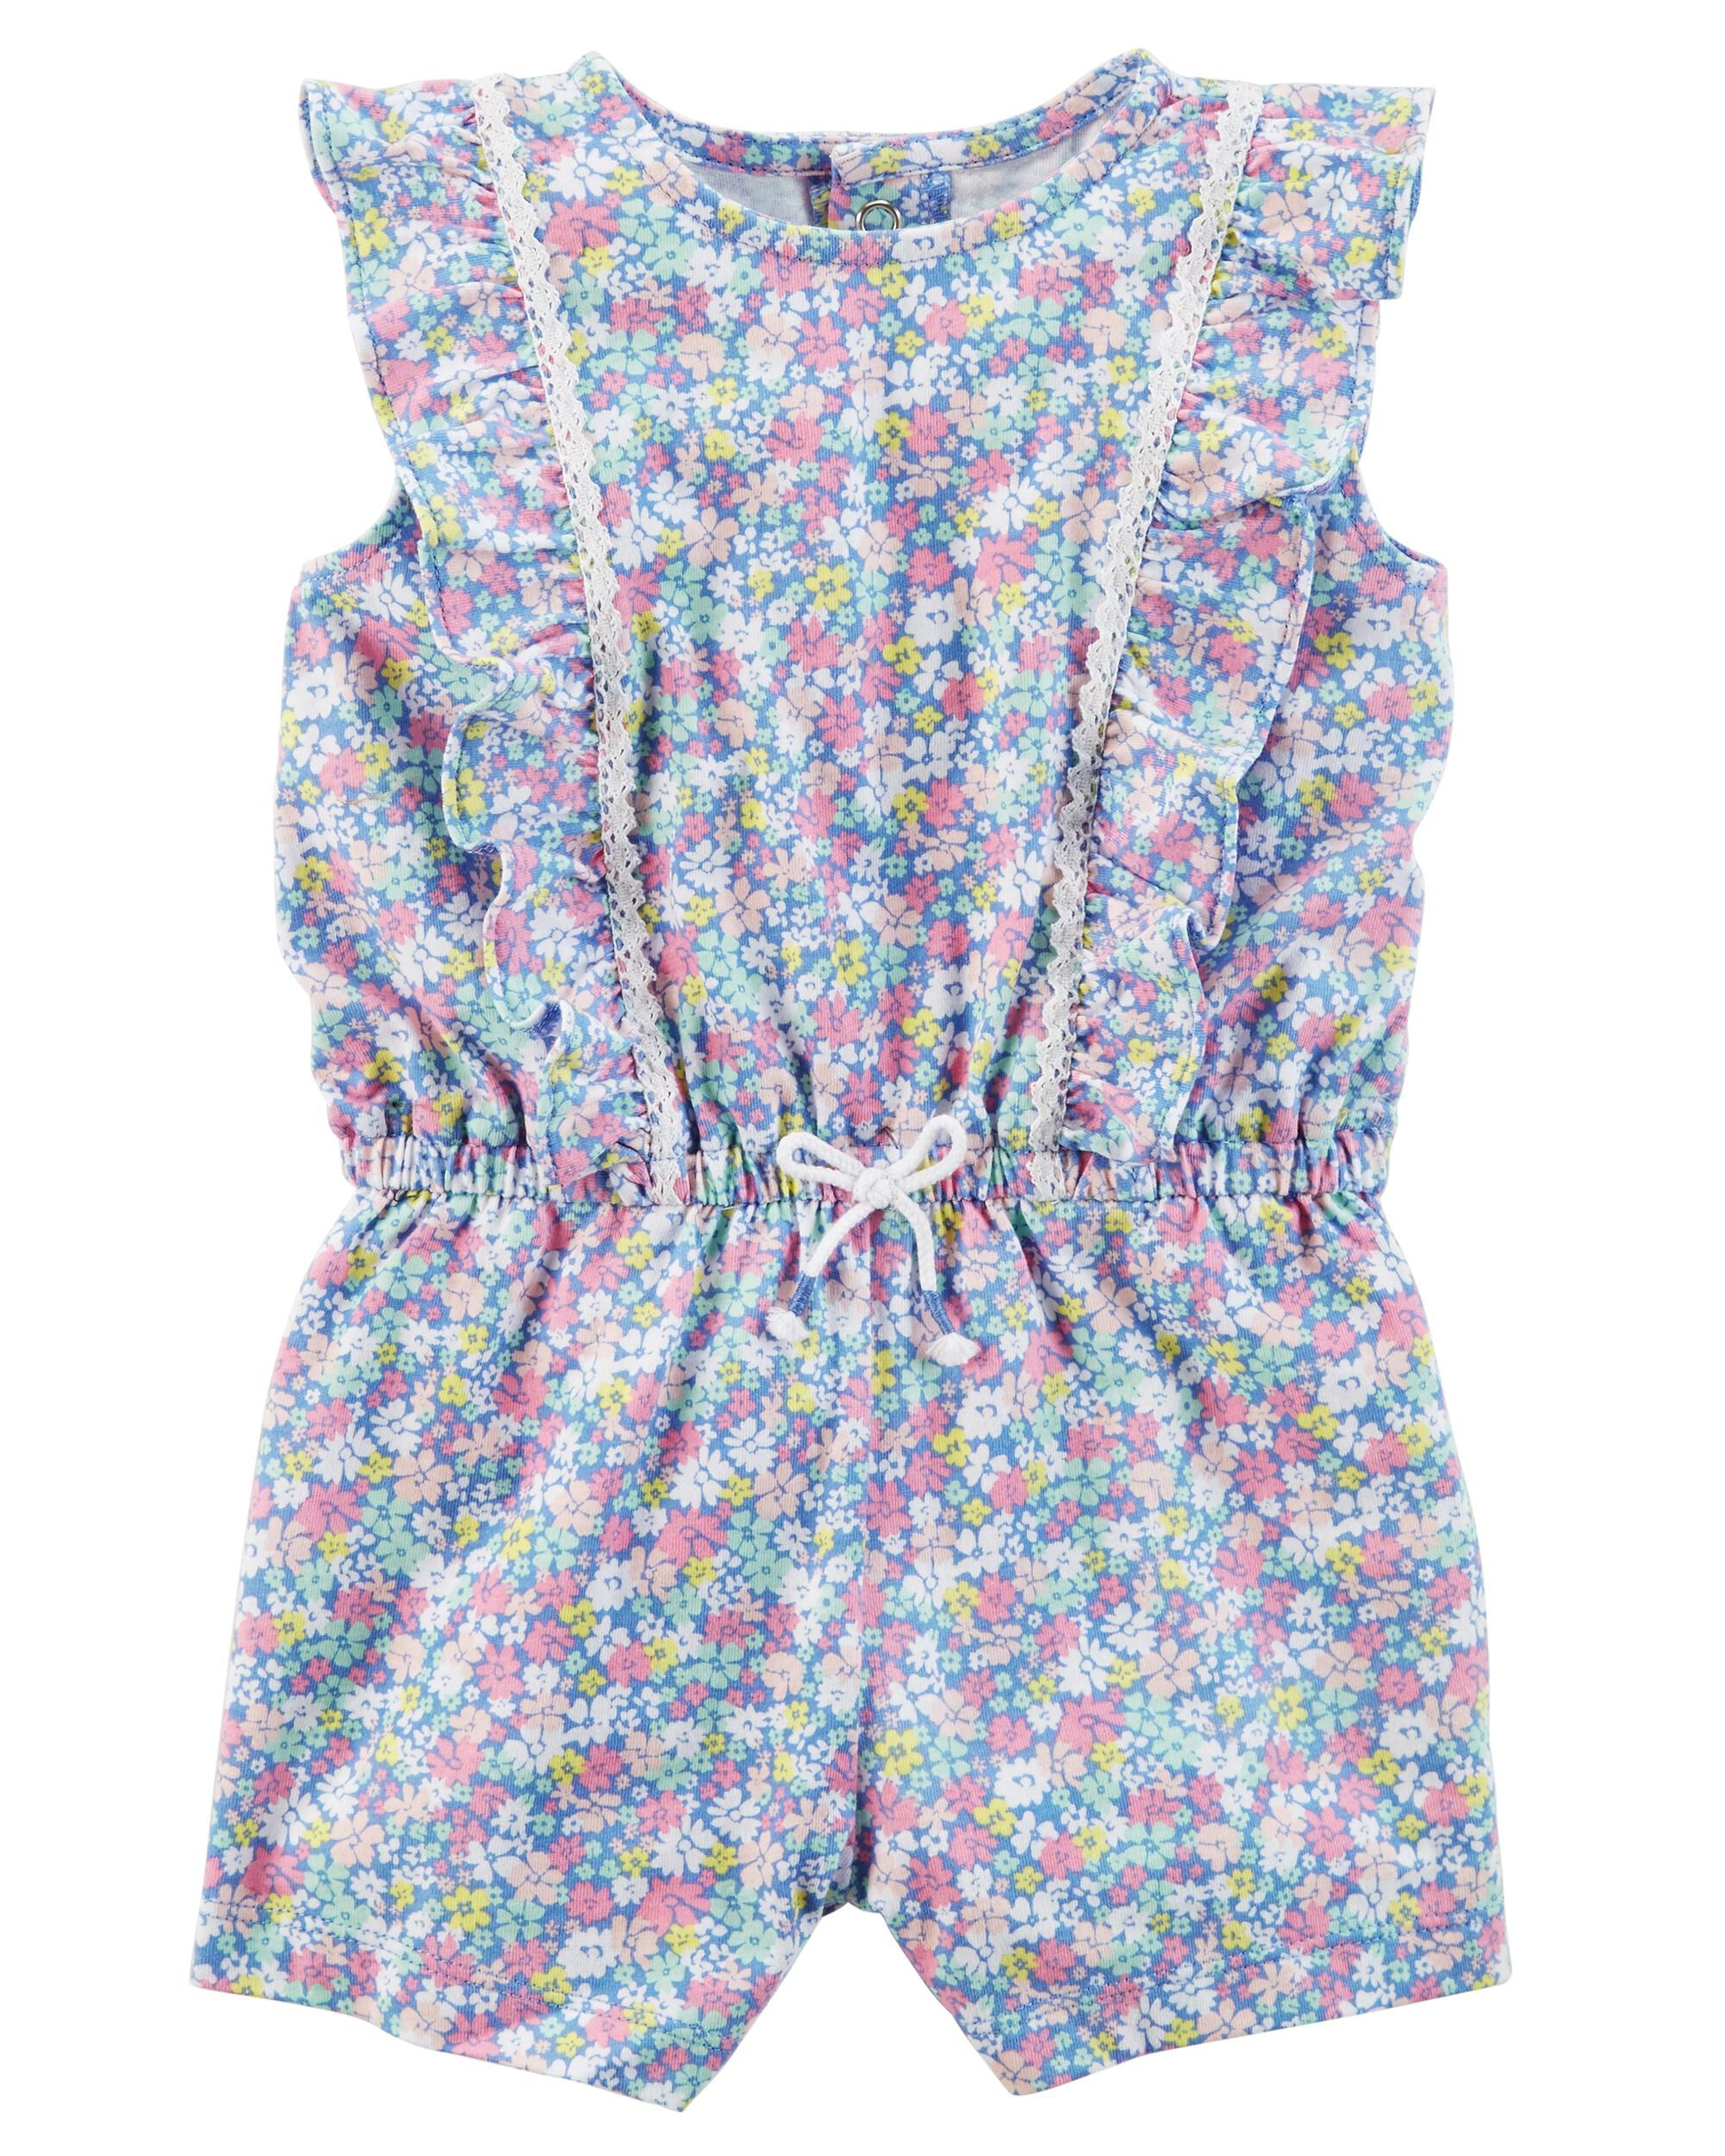 Trustful Kids Girl Clothing Floral Romper New In Bag Girls' Clothing (newborn-5t)